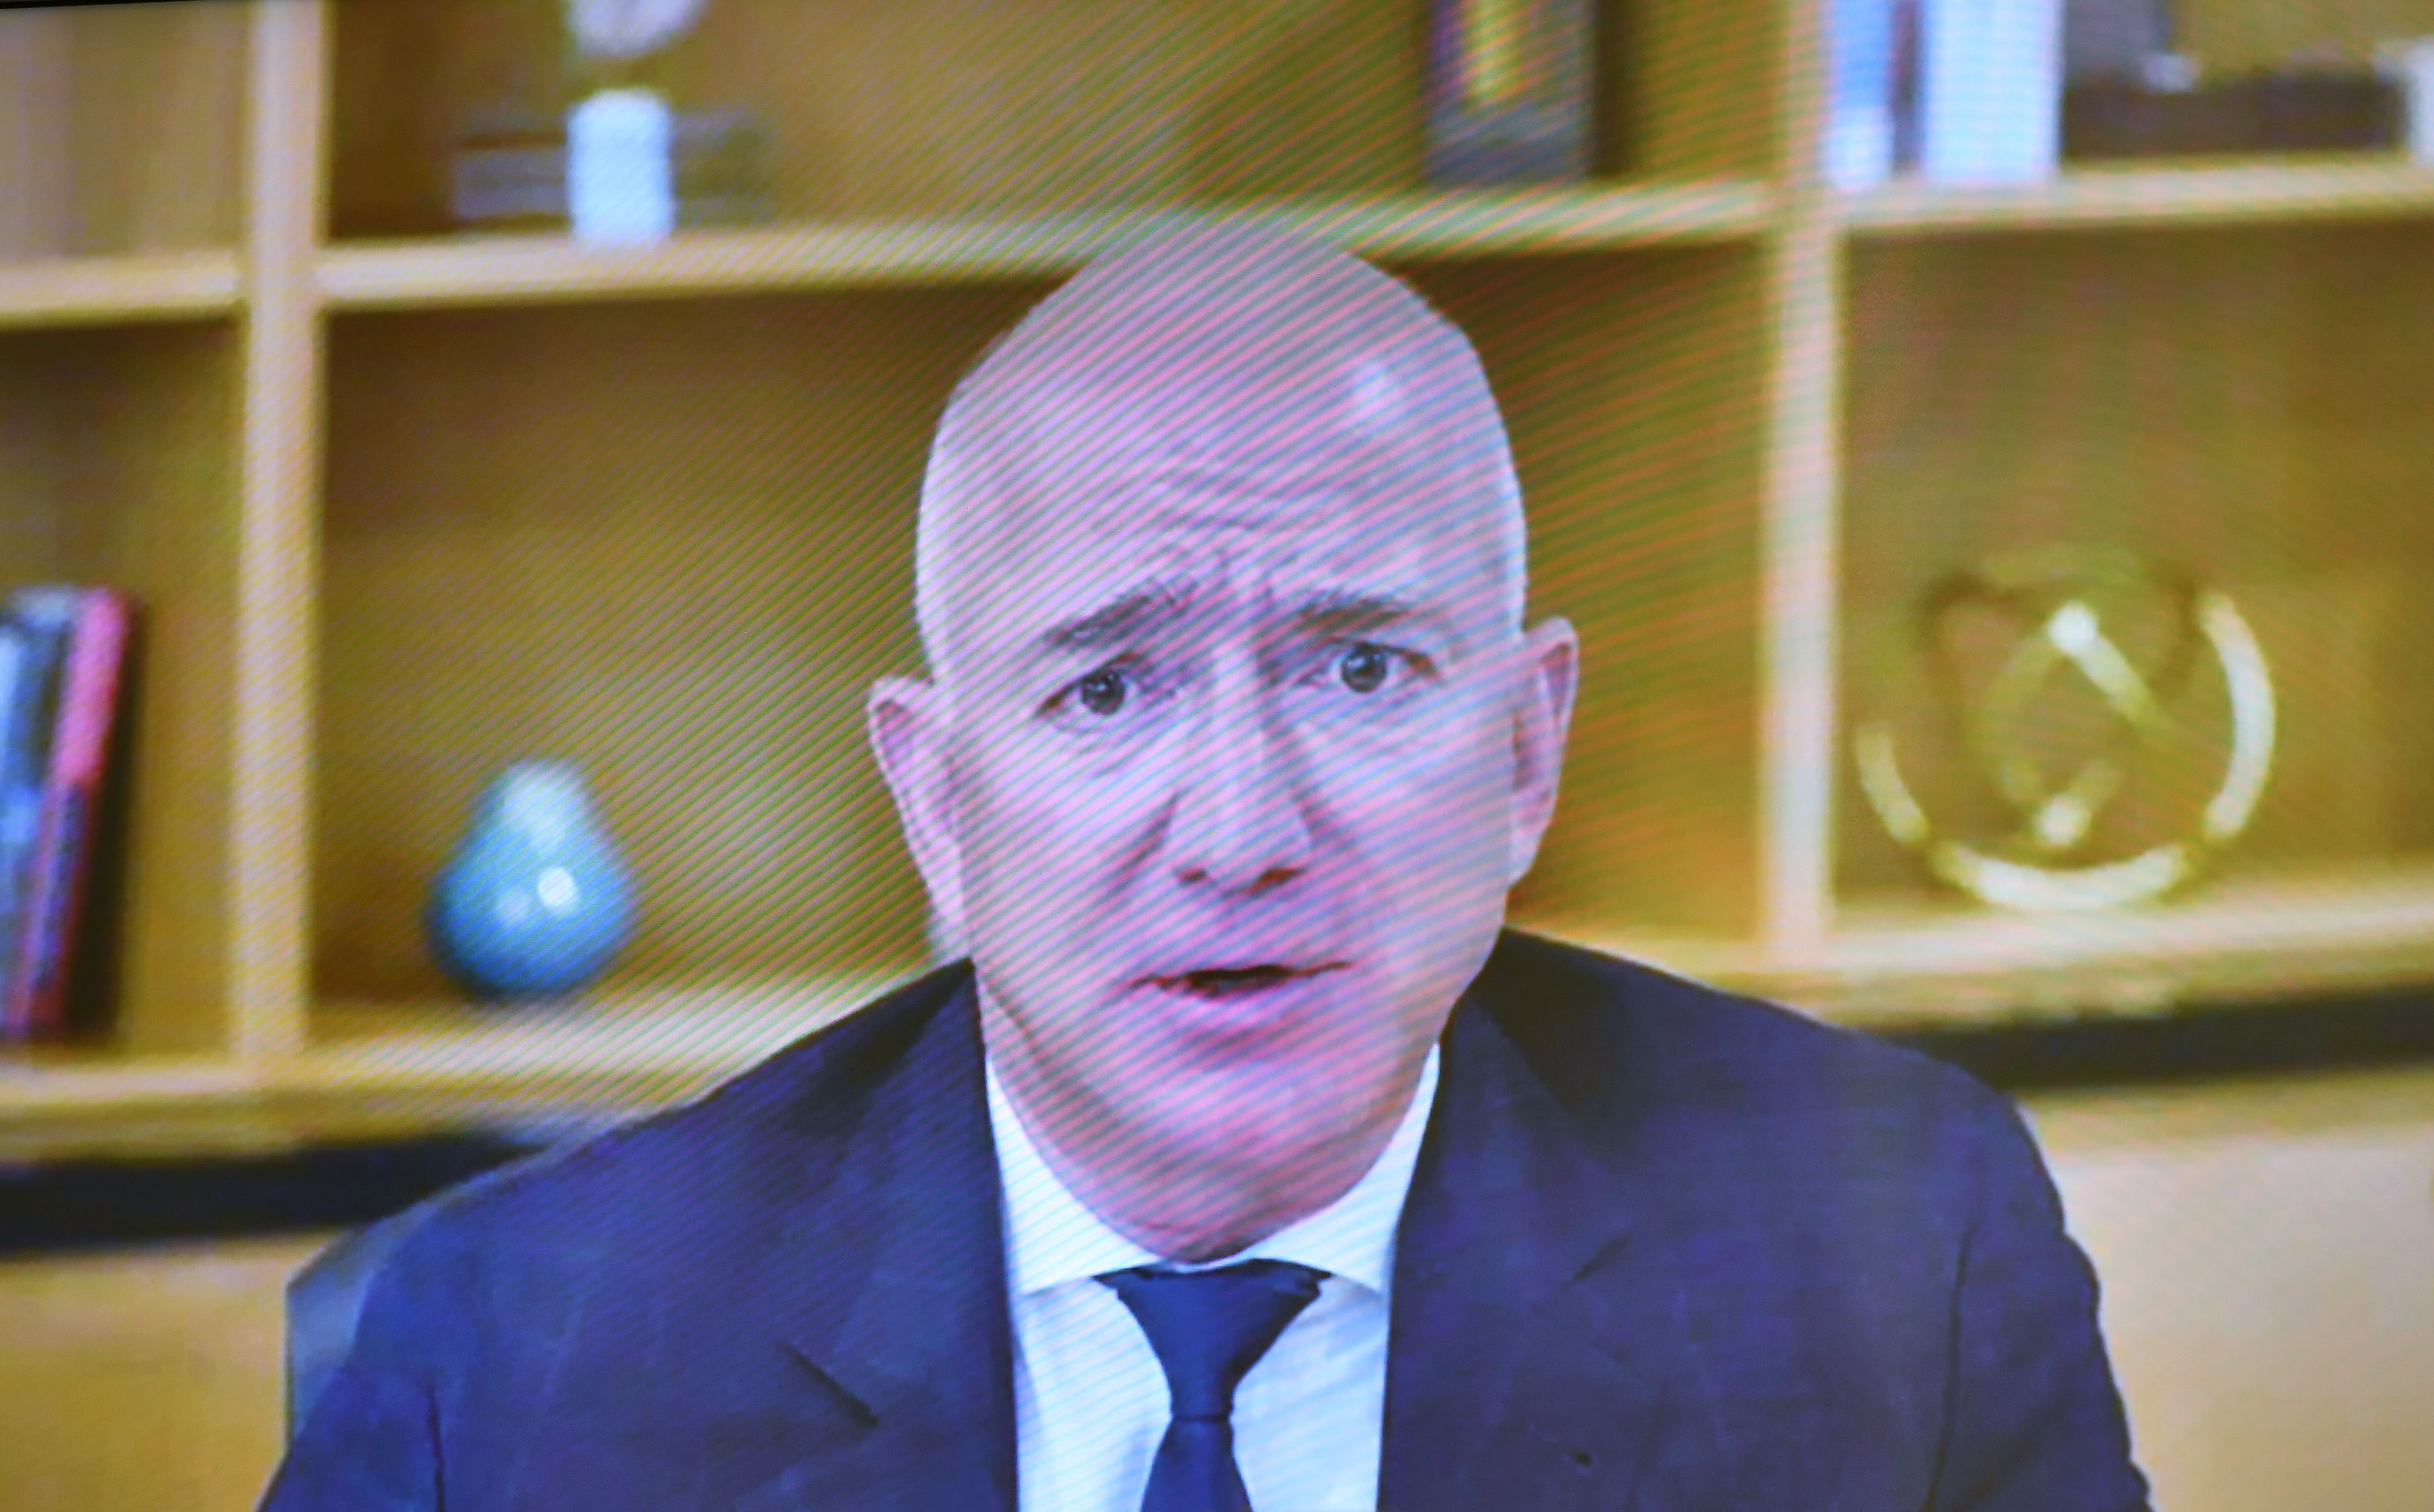 Amazon CEO Jeff Bezos appearing on a screen giving testimony to Congress.